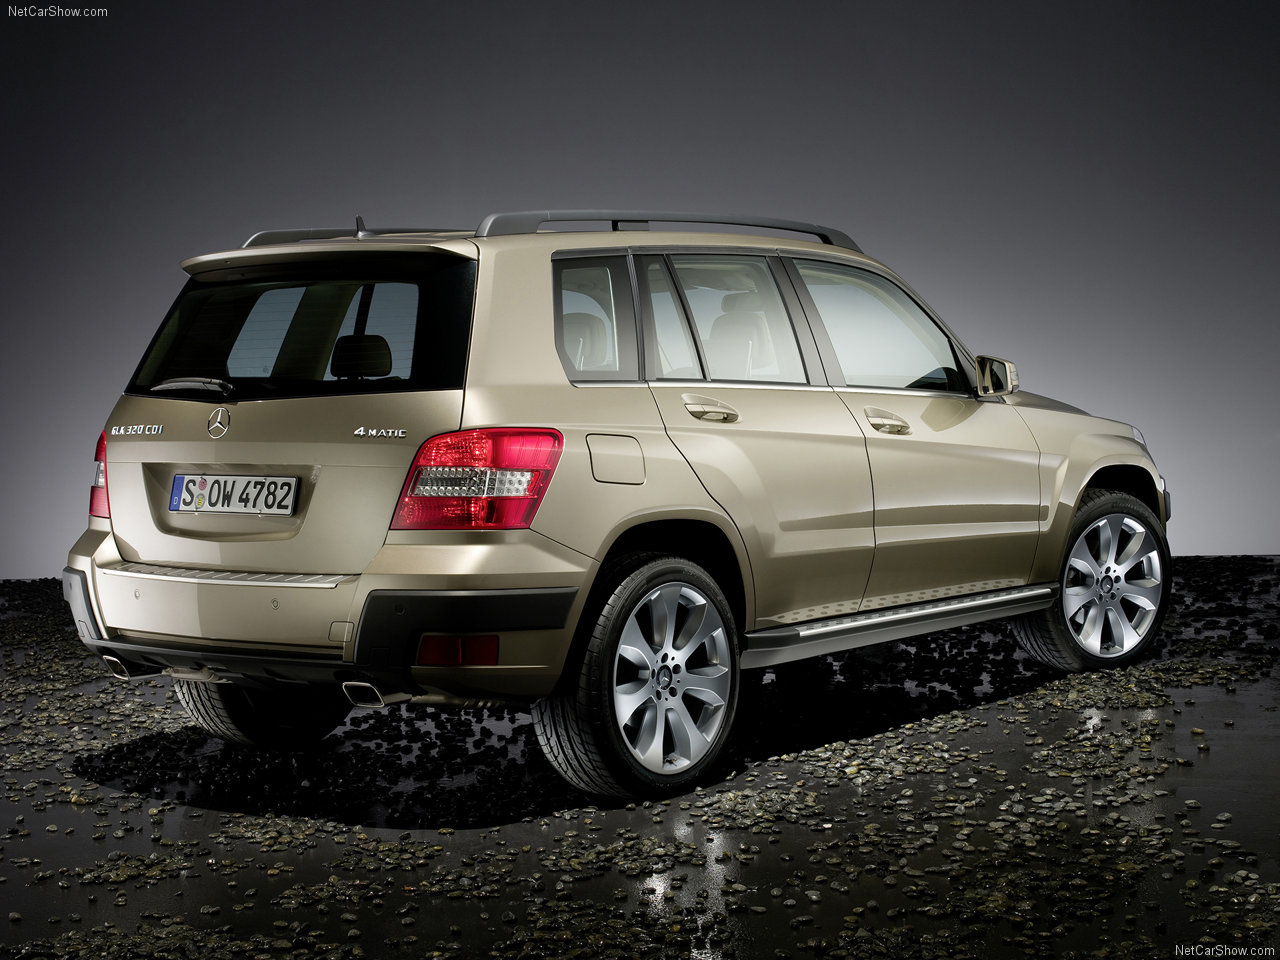 Sports Car Prices: New SUV Cars Mercedes-Benz GLK-Class 2010